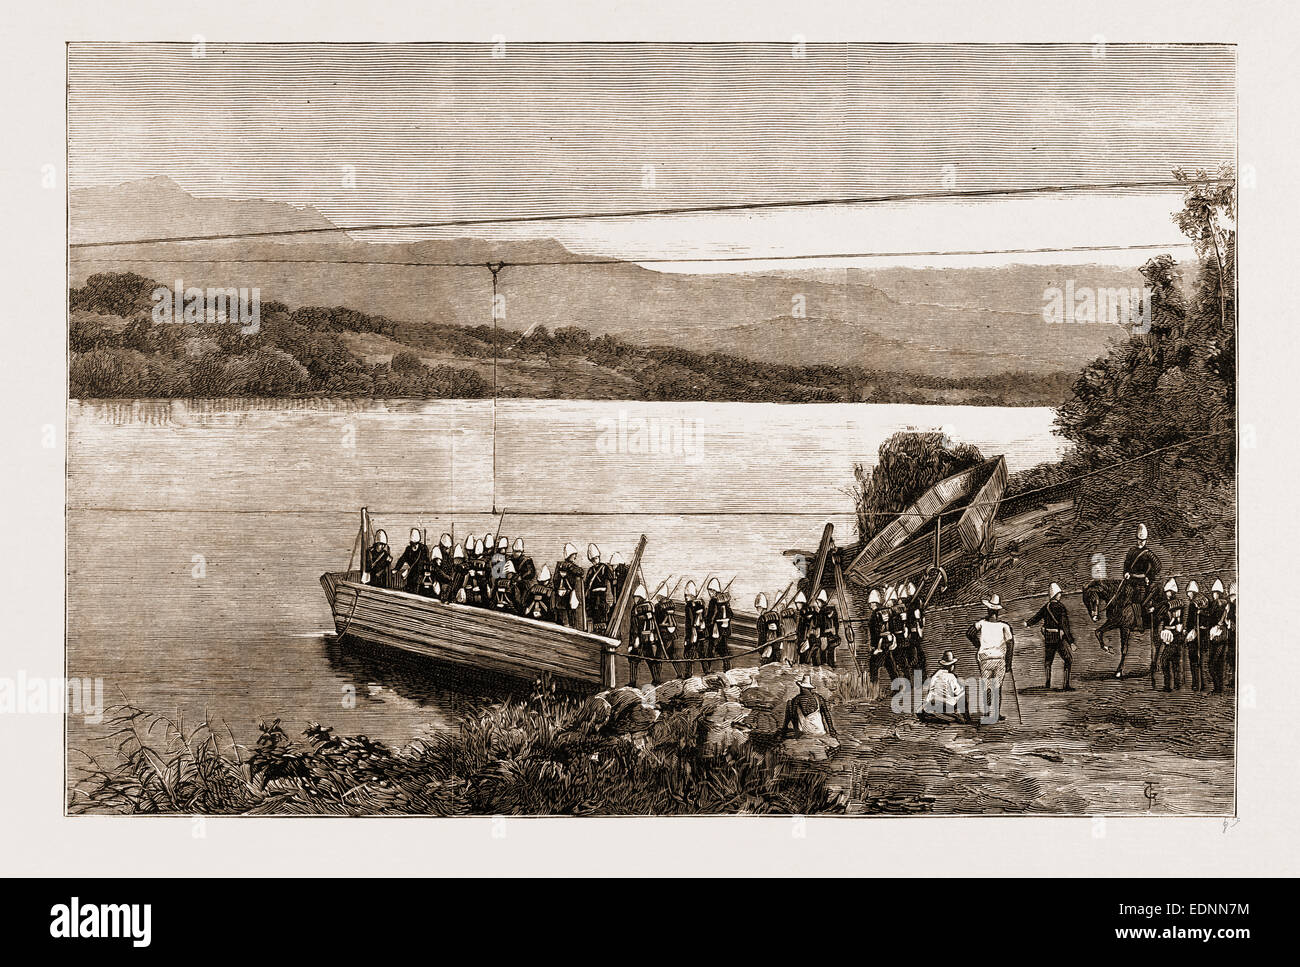 THE REBELLION IN THE TRANSVAAL, SOUTH AFRICA, 1881: TUGELA FERRY ON THE ROAD TO THE BIGGARSBERG Stock Photo